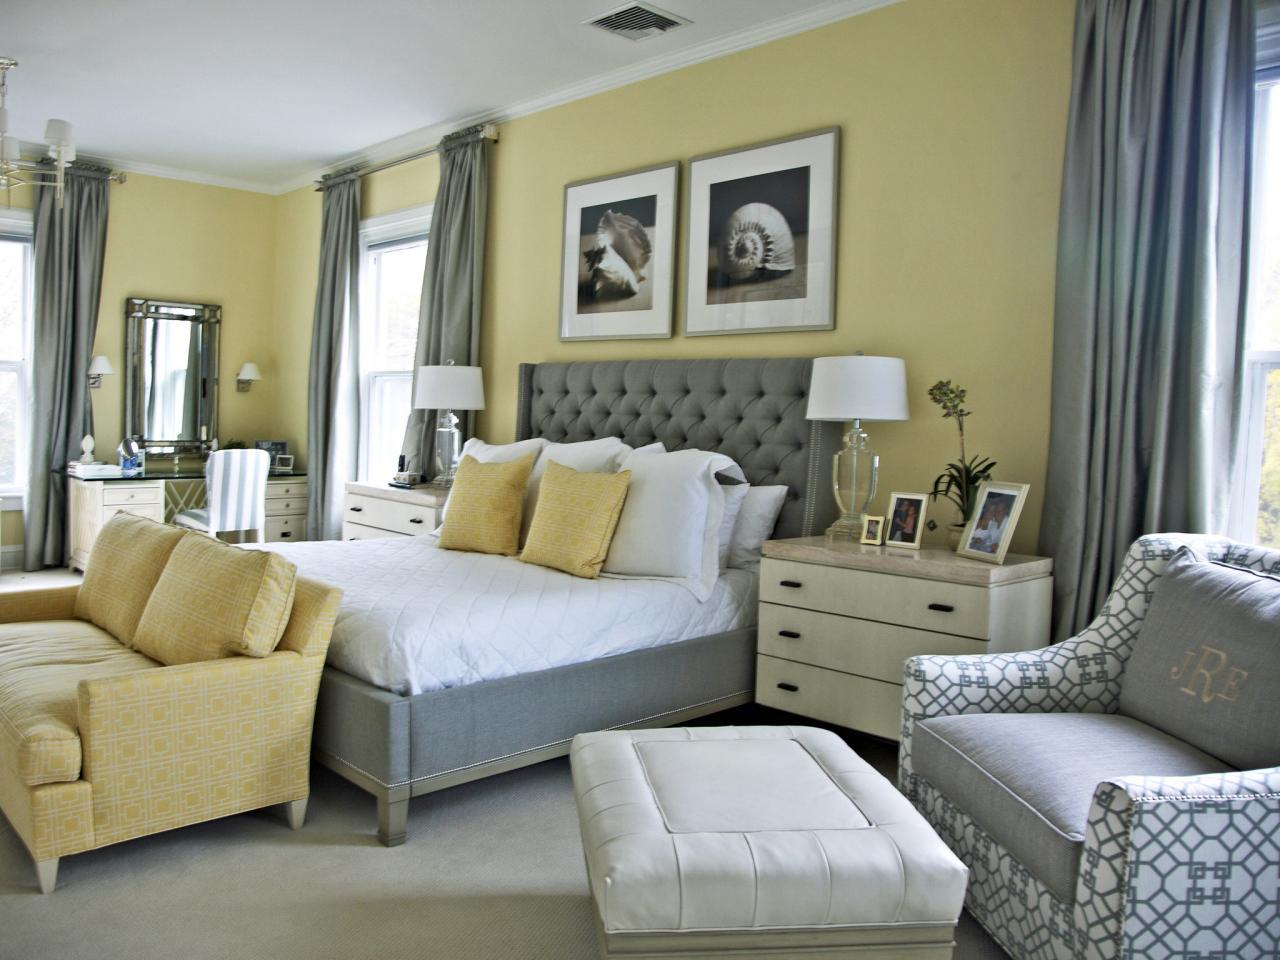 small bedroom color schemes pictures options amp ideas hgtv small bedroom color schemes pictures options amp ideas 476